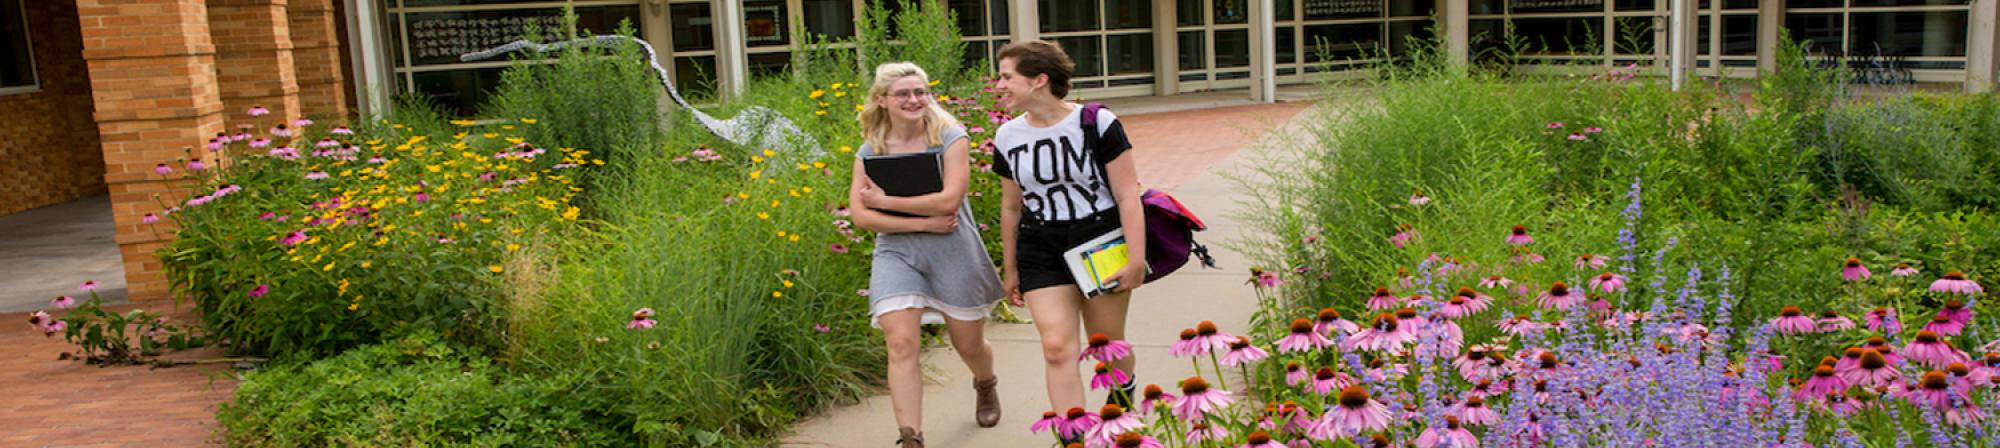 two female students walking out of an academic building on a sidewalk with wild flowers on both sides of them